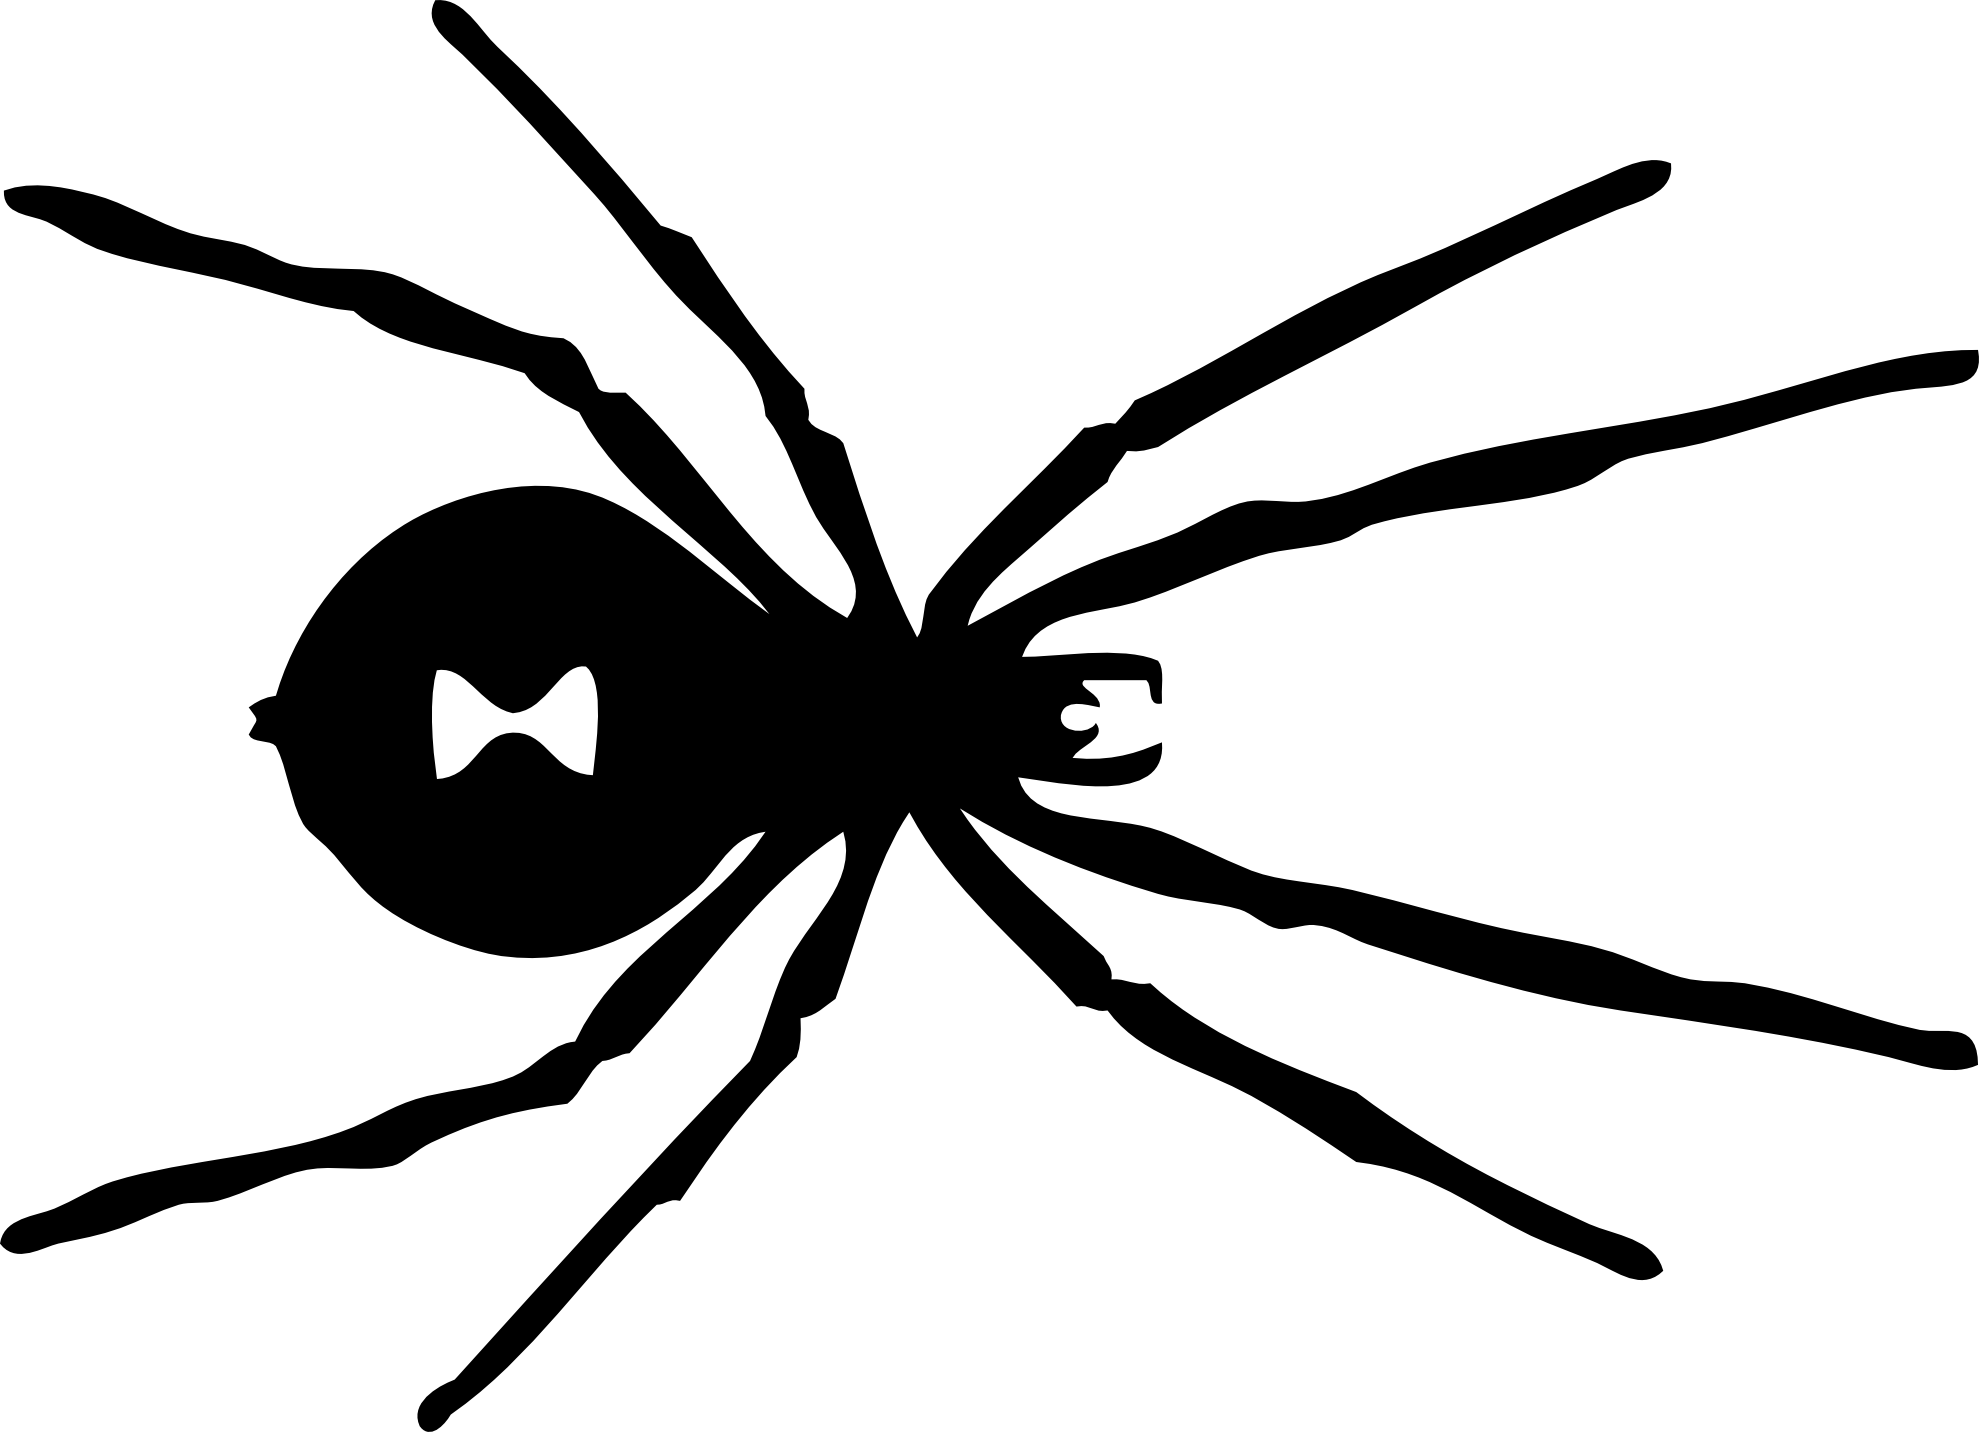 Drawn spider spider black and white #3